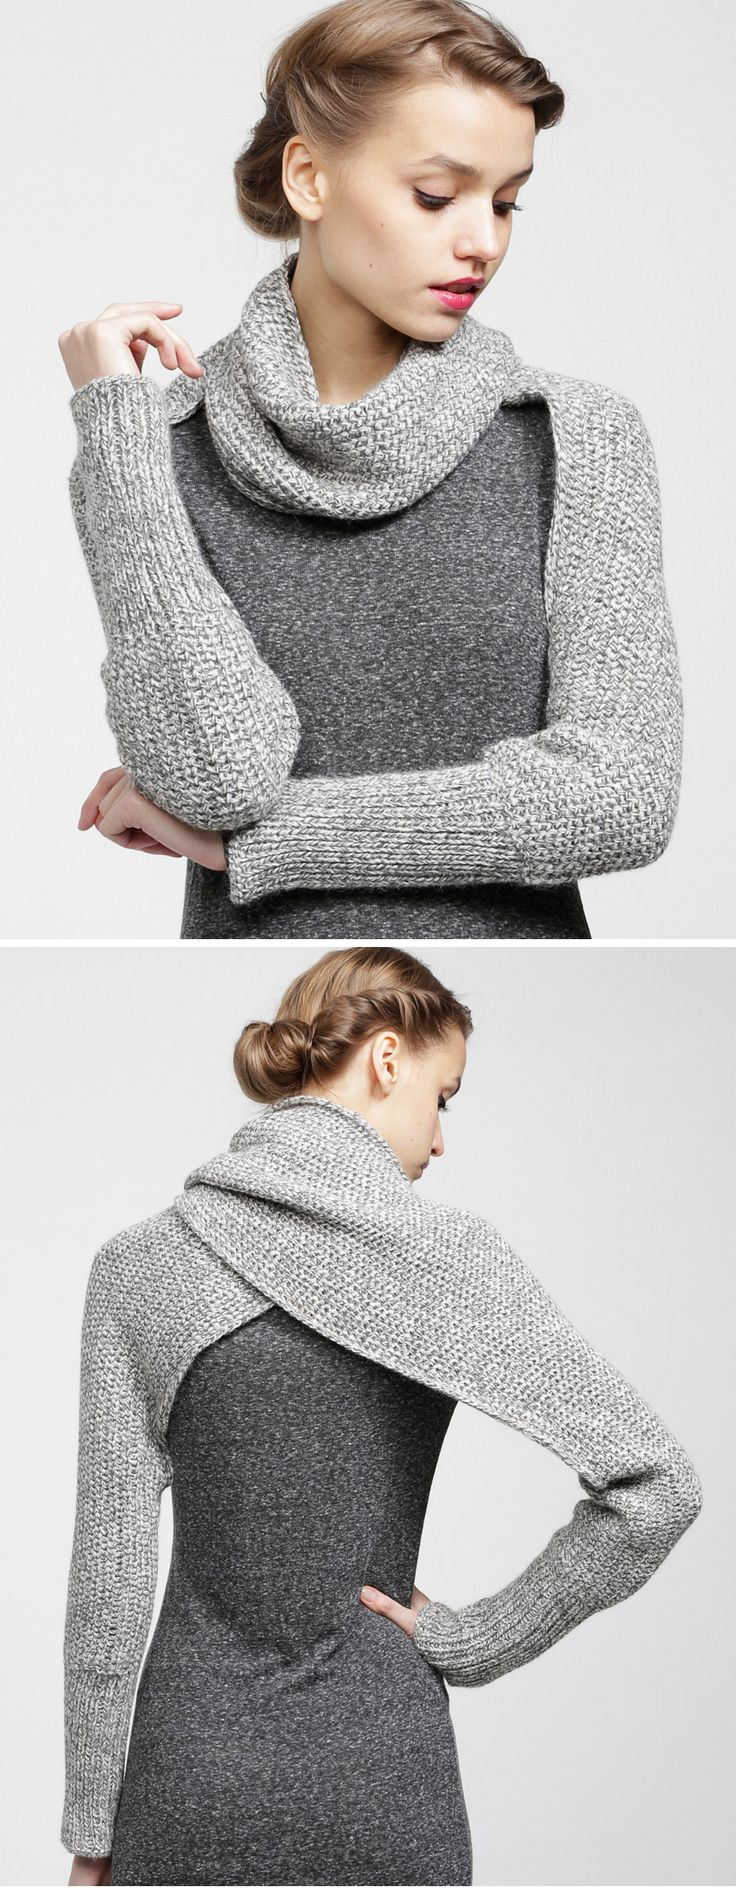 I love and want this so much #Cute #Knitted #Style #Live #Want